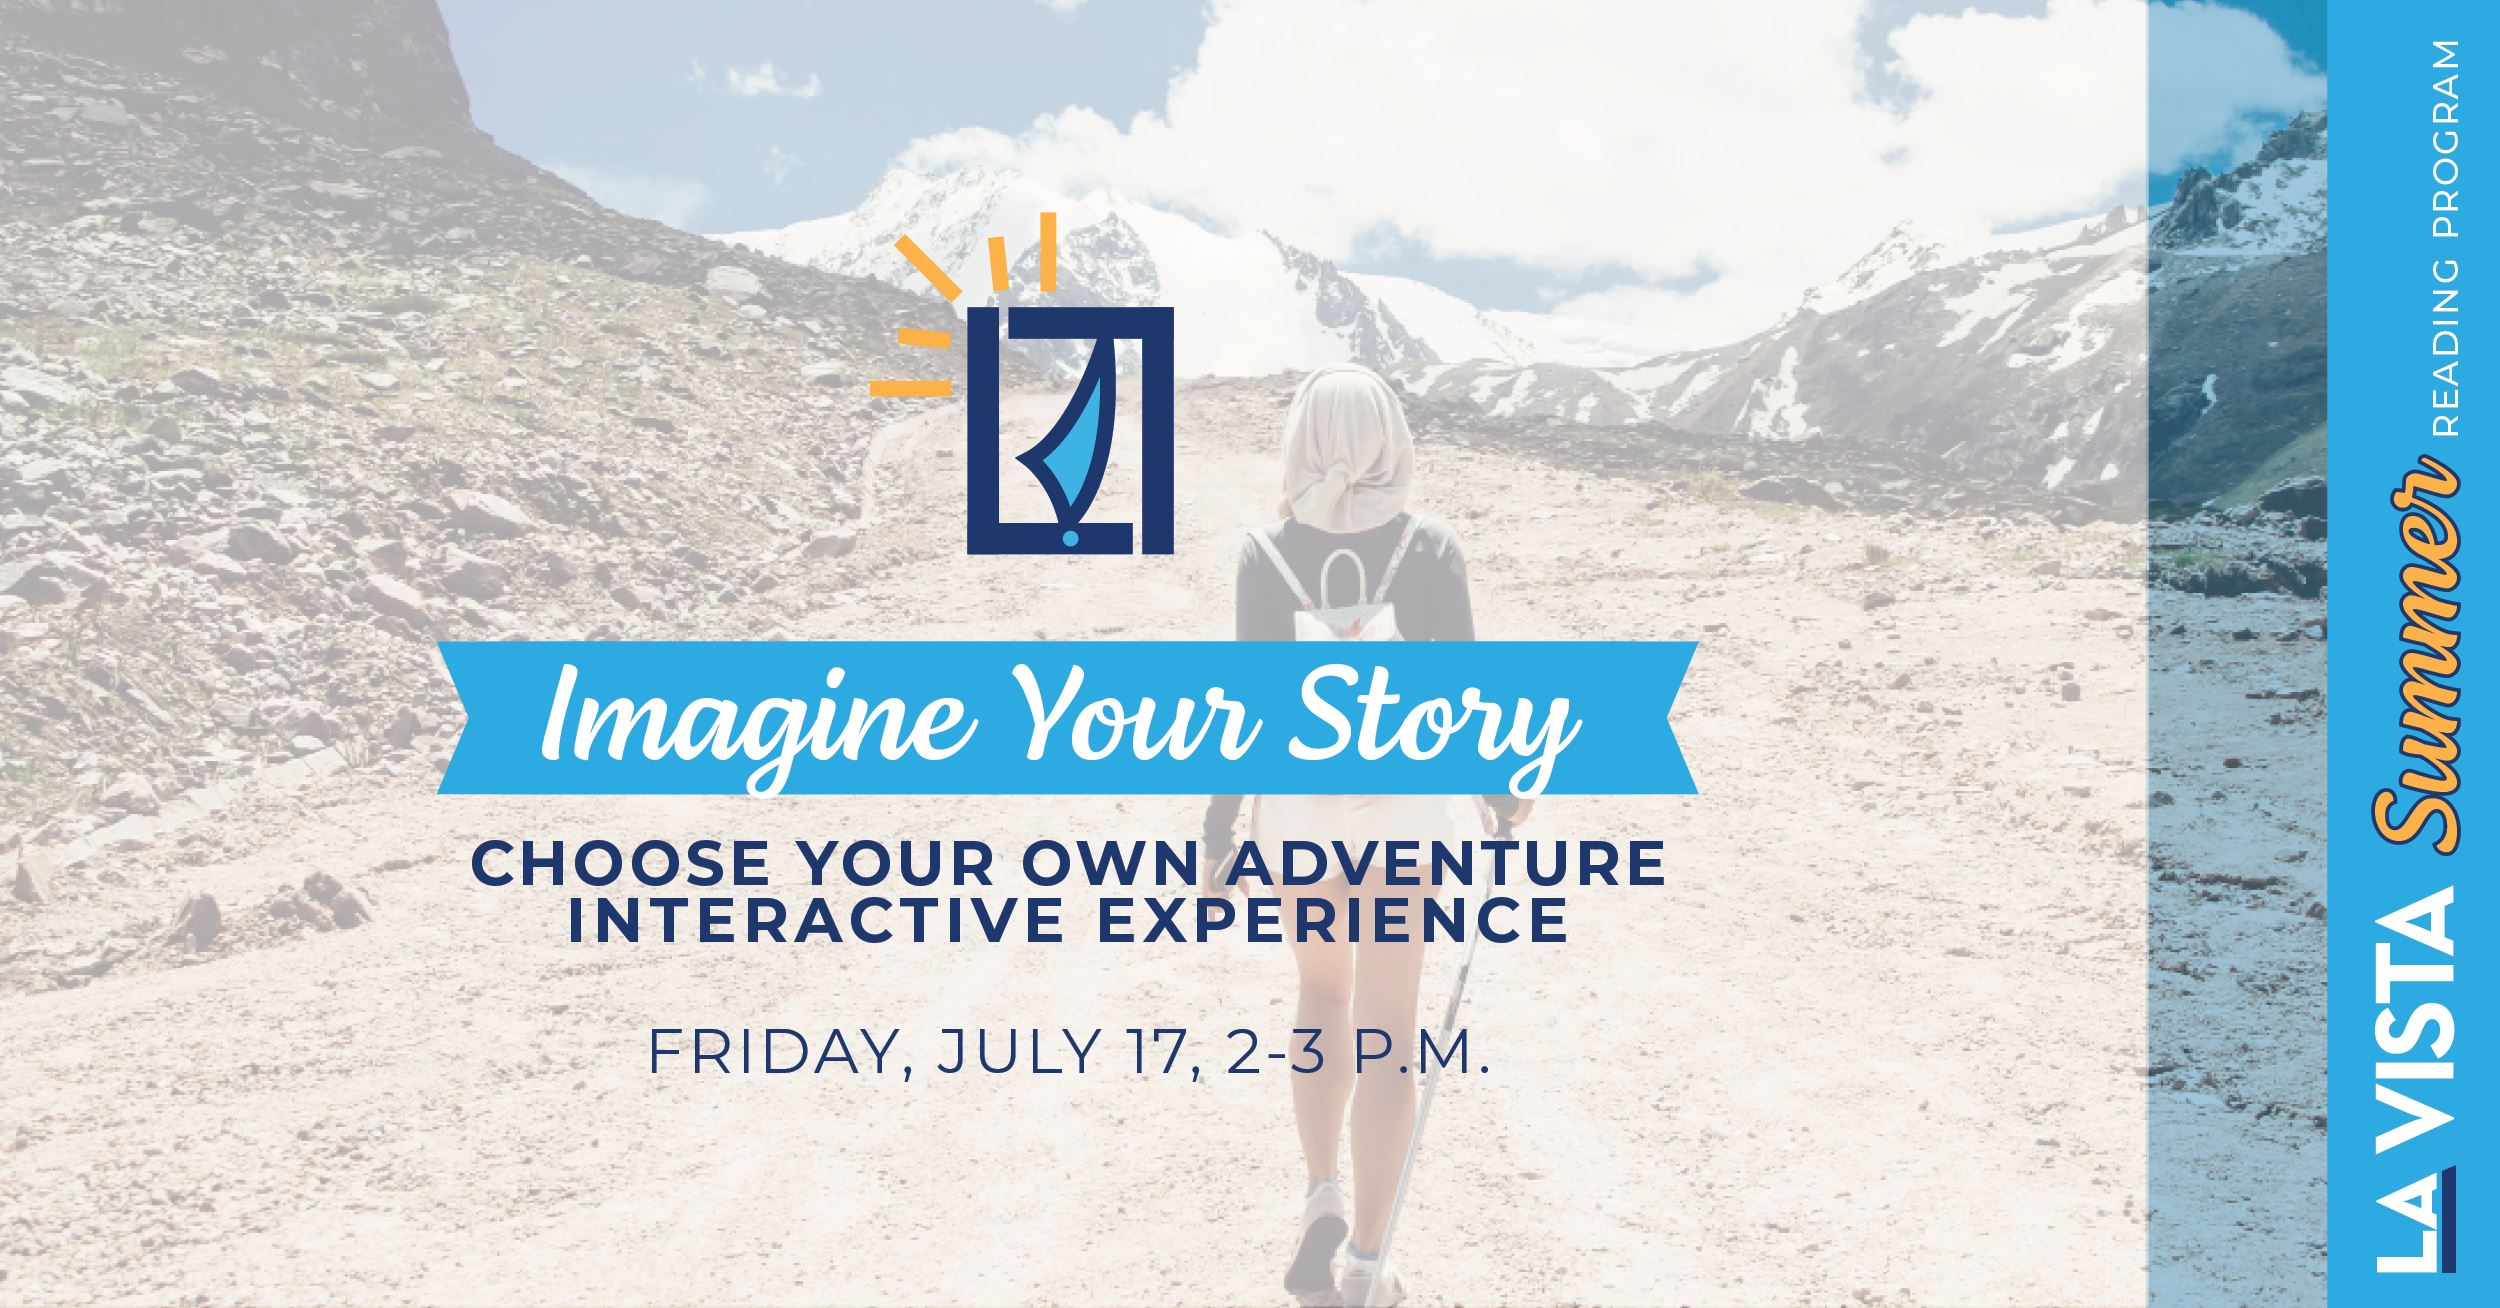 FACEBOOK Choose your own adventure July 17